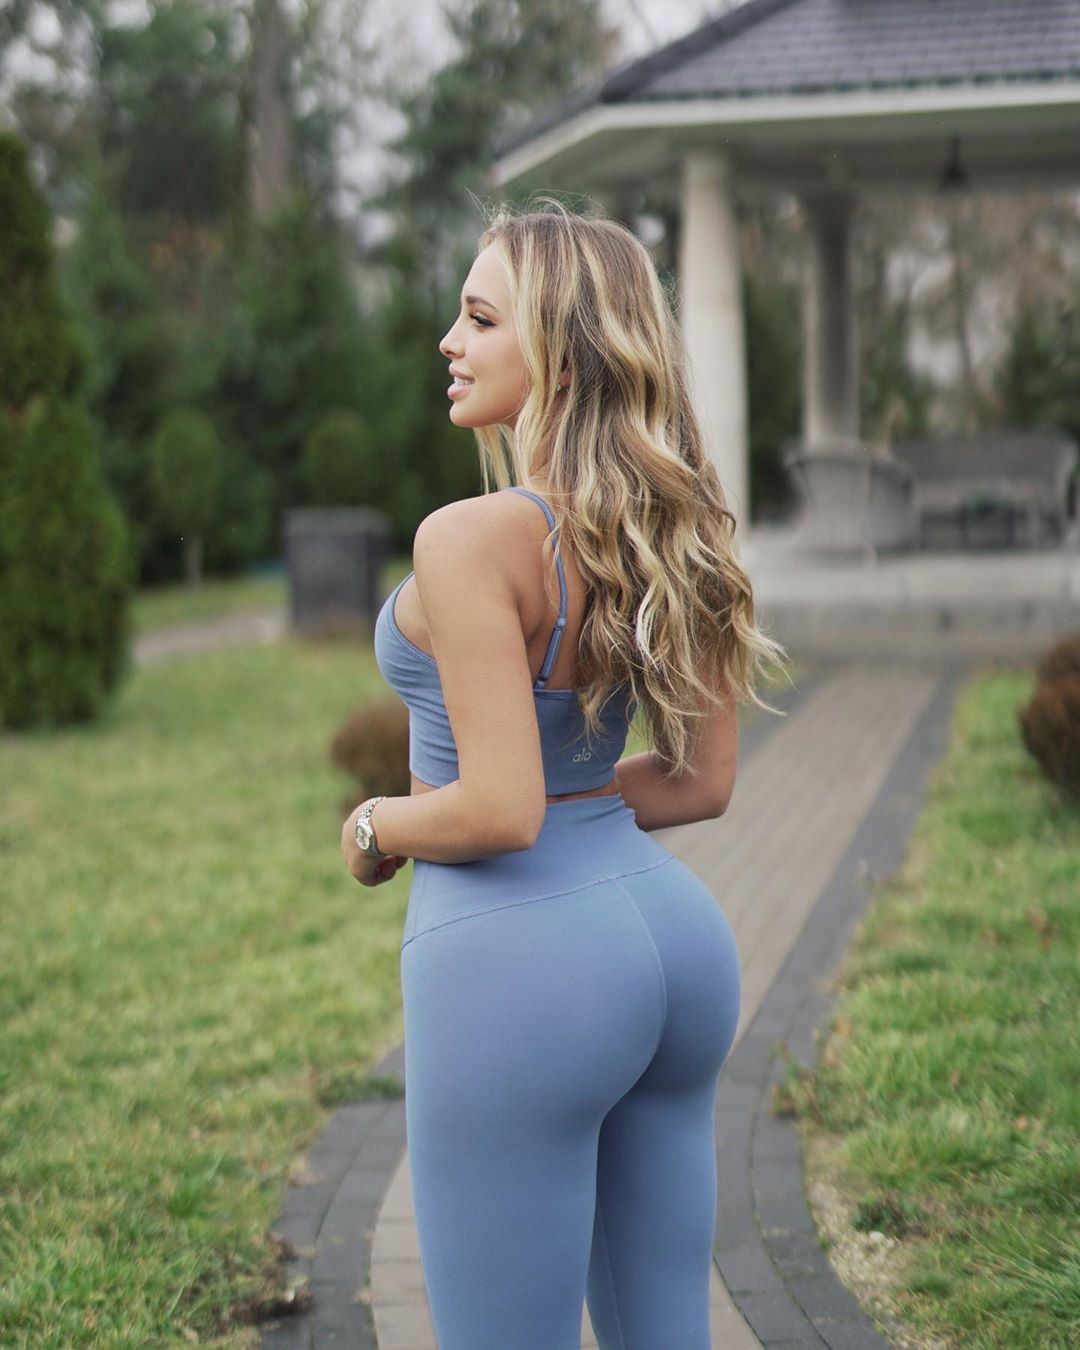 Veronica-Bielik-Wallpapers-Insta-Fit-Bio-5